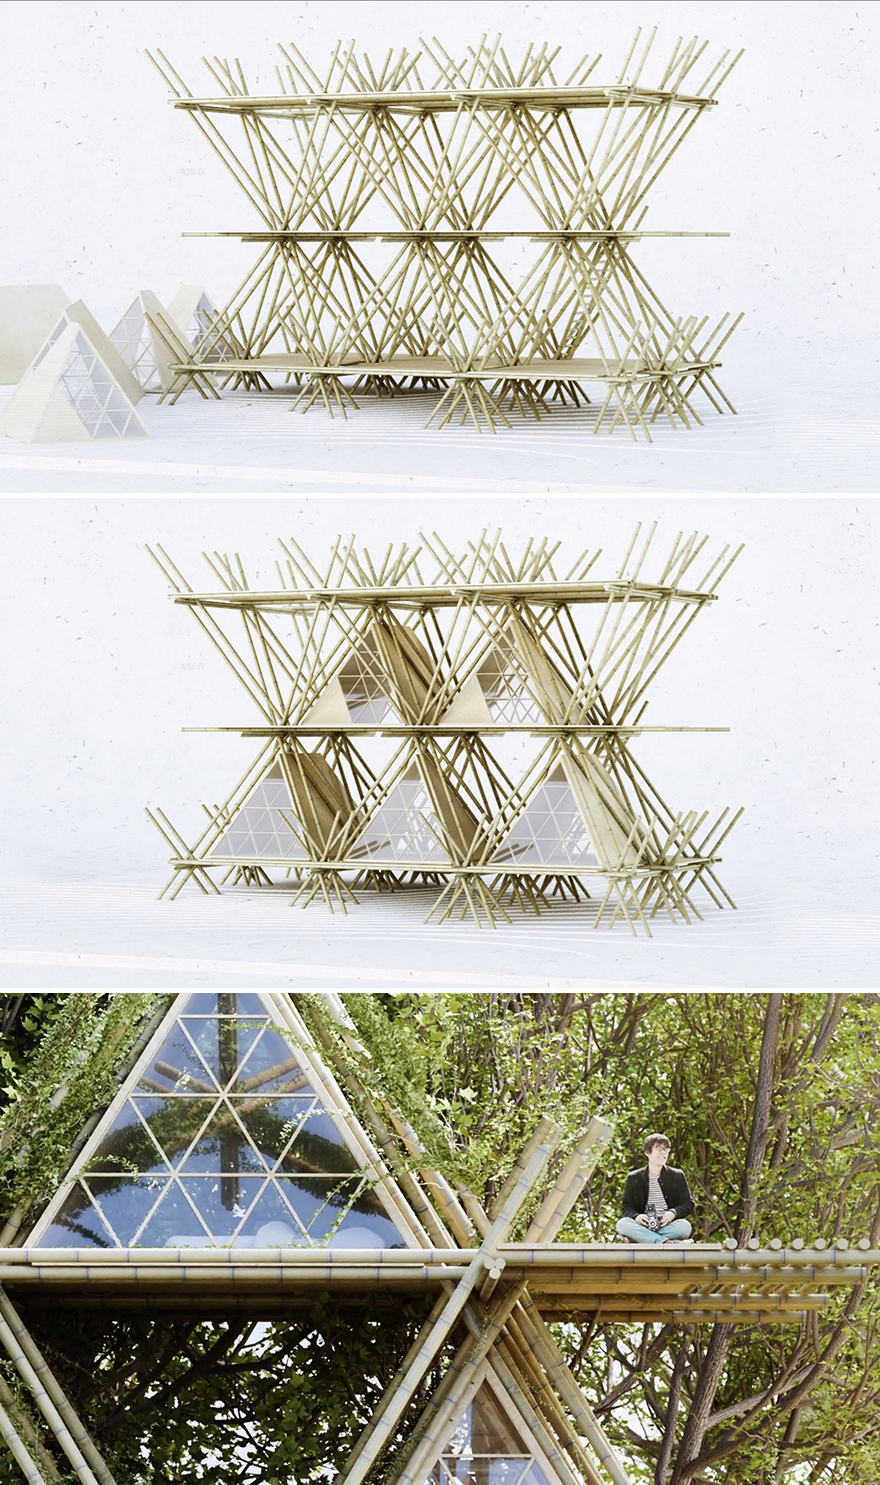 bamboo architecture buildings and structures pdf